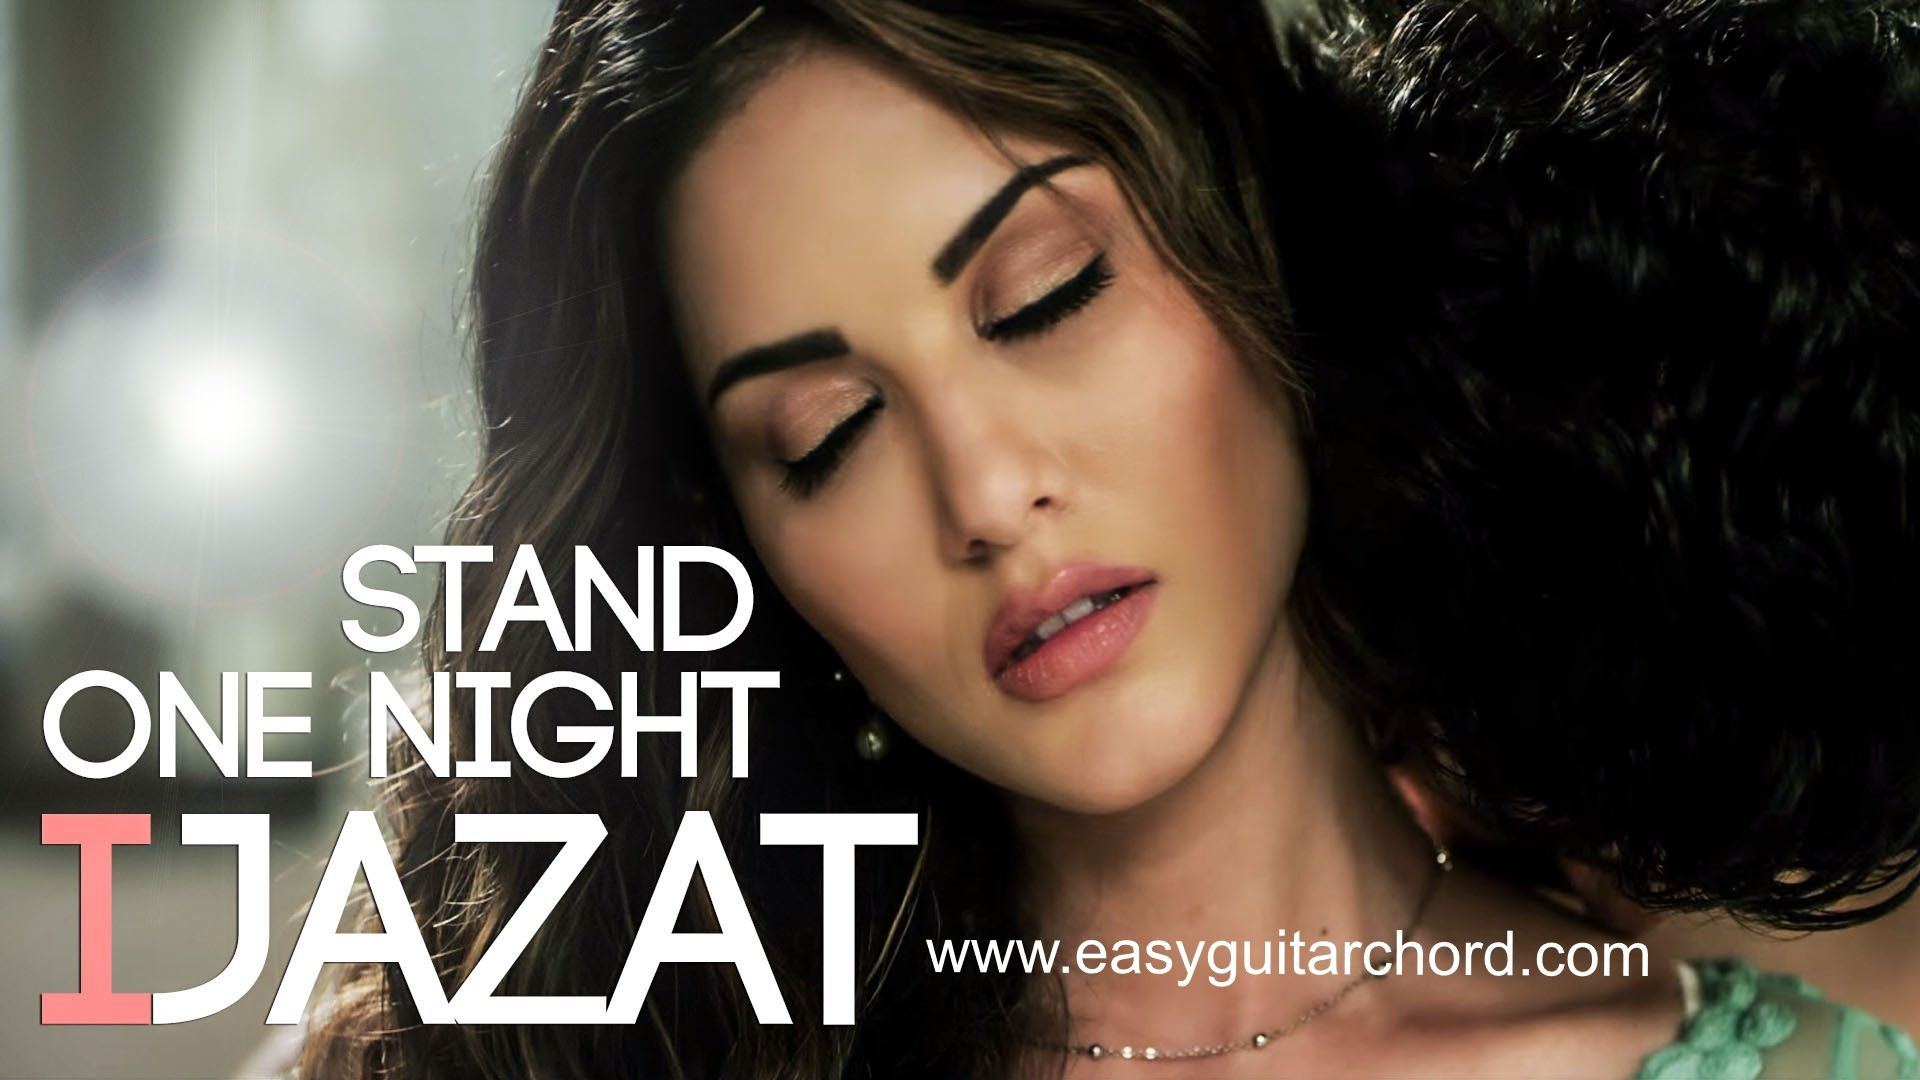 Pin By Easy Guitar Chord On Bollywood Songs Pinterest Guitar